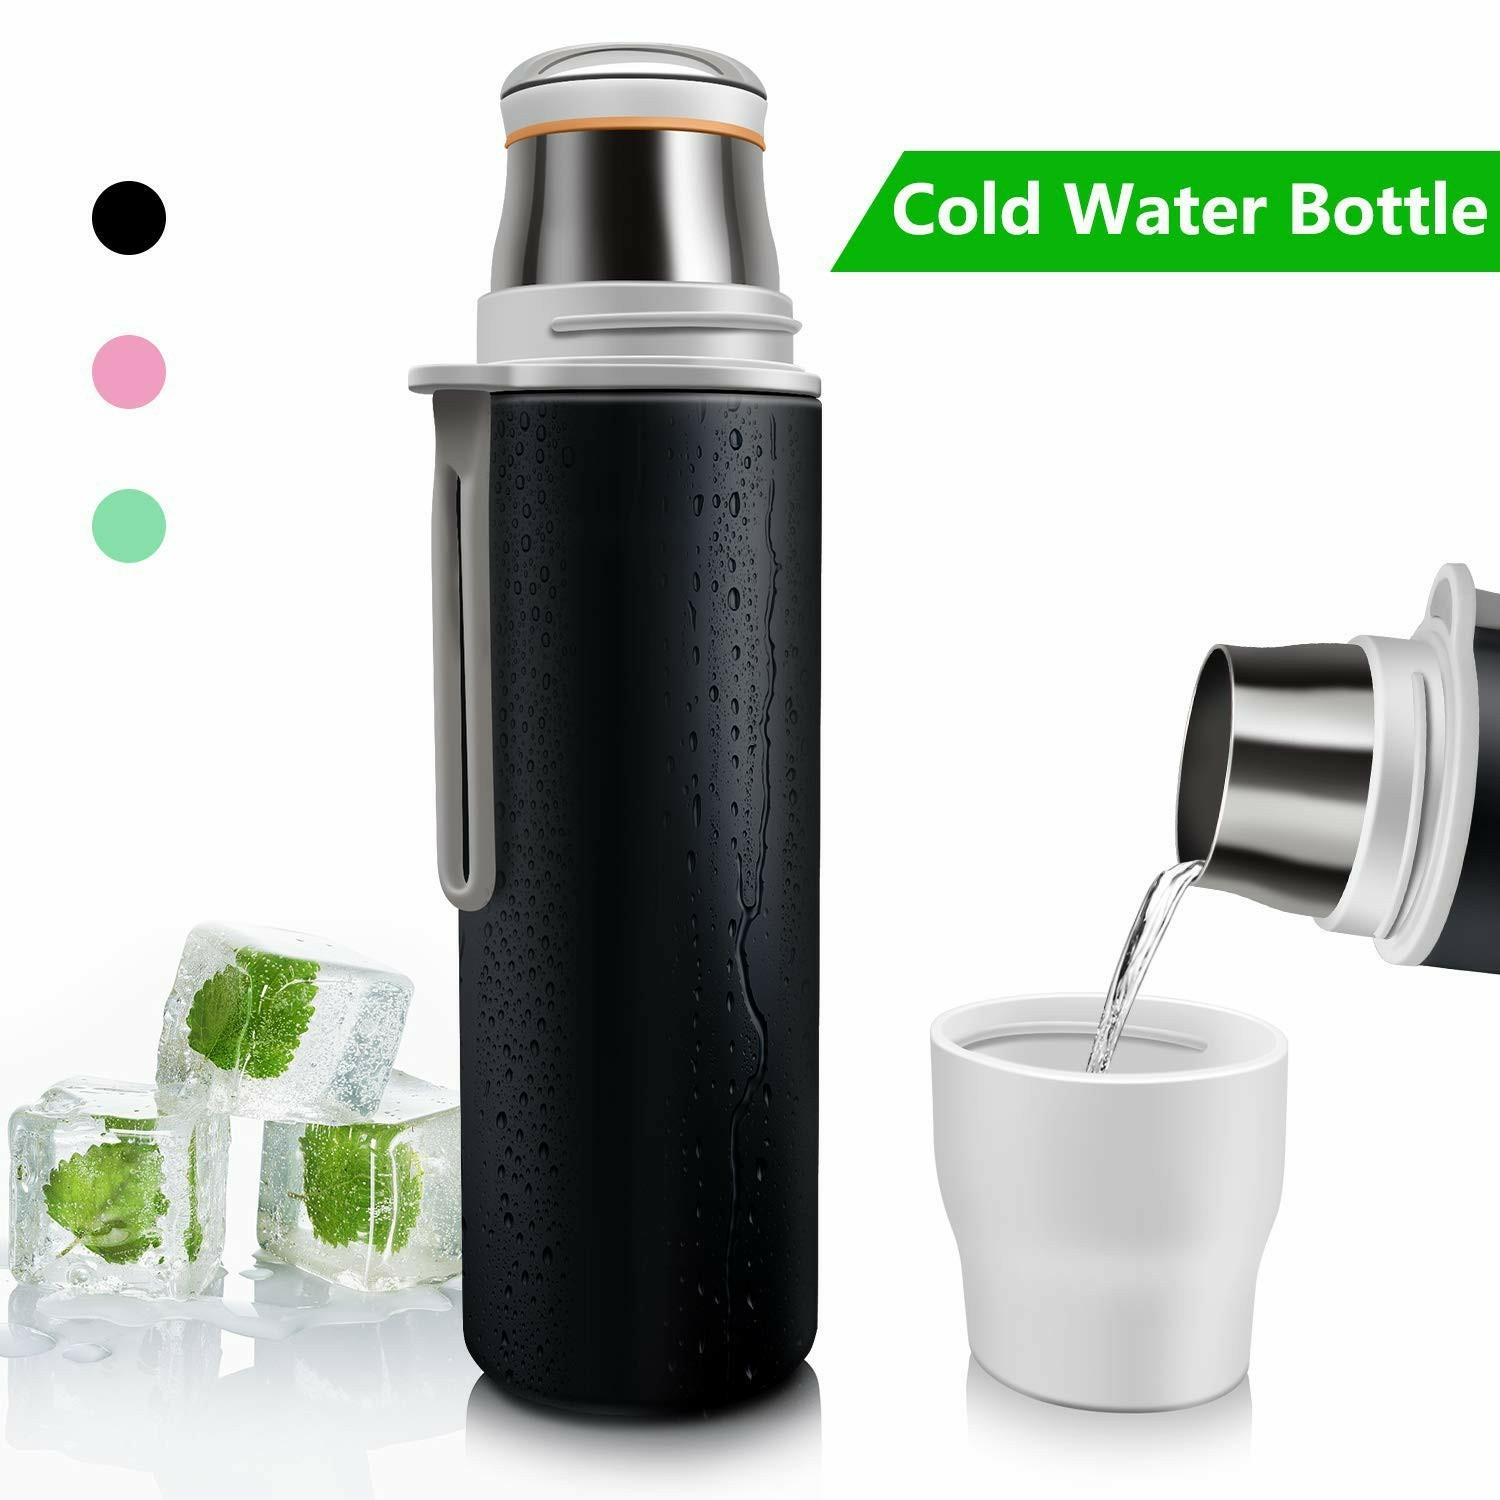 Double Insulated Water Bottle - Black